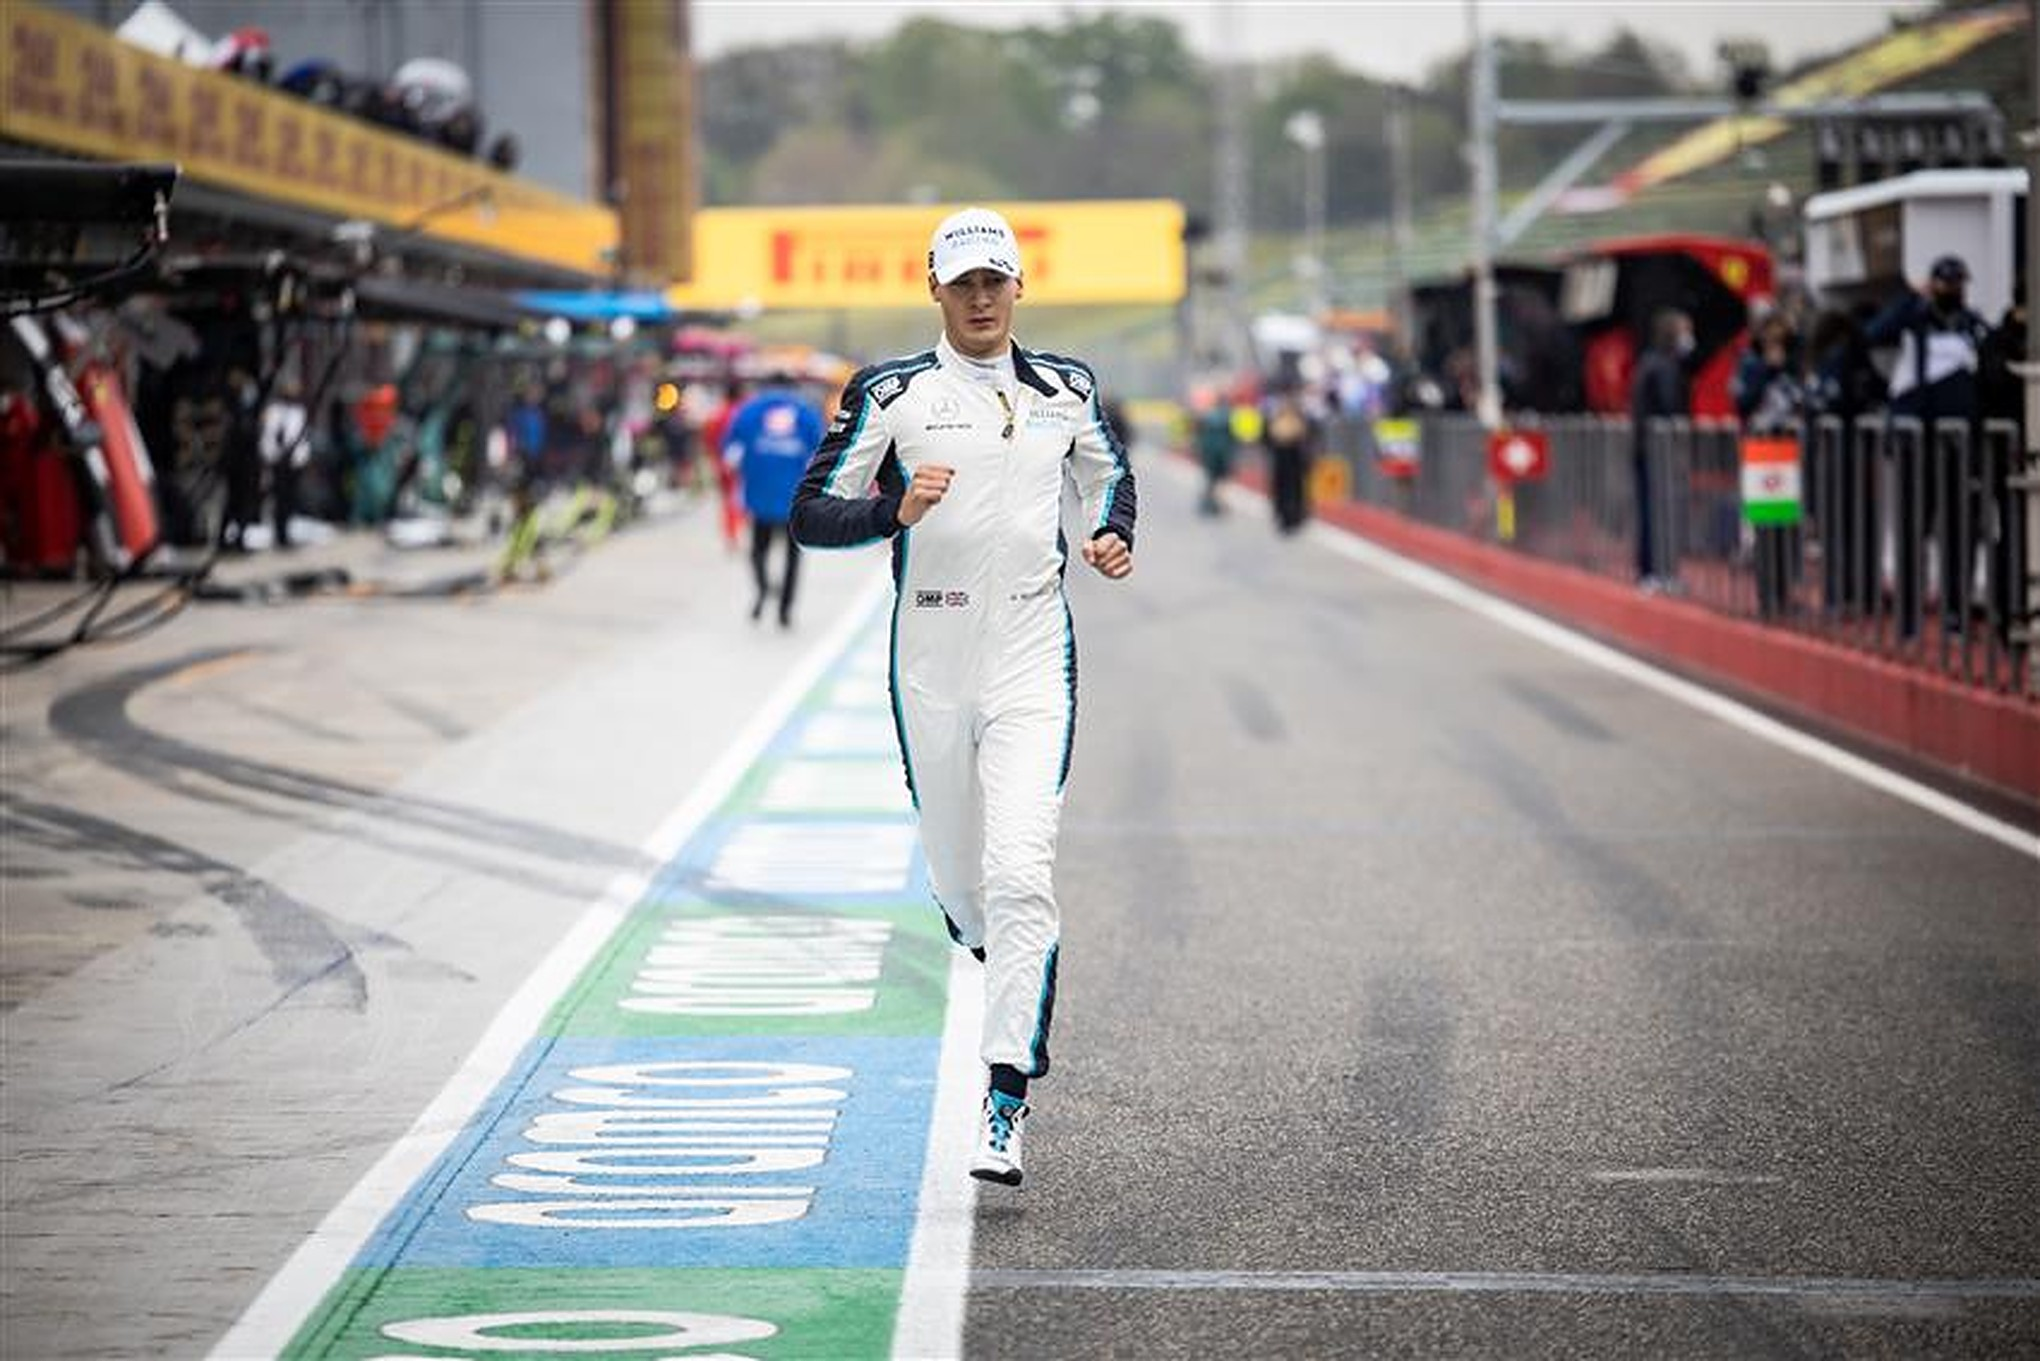 George Russell in the pitlane at Imola - Formula1news.co.uk